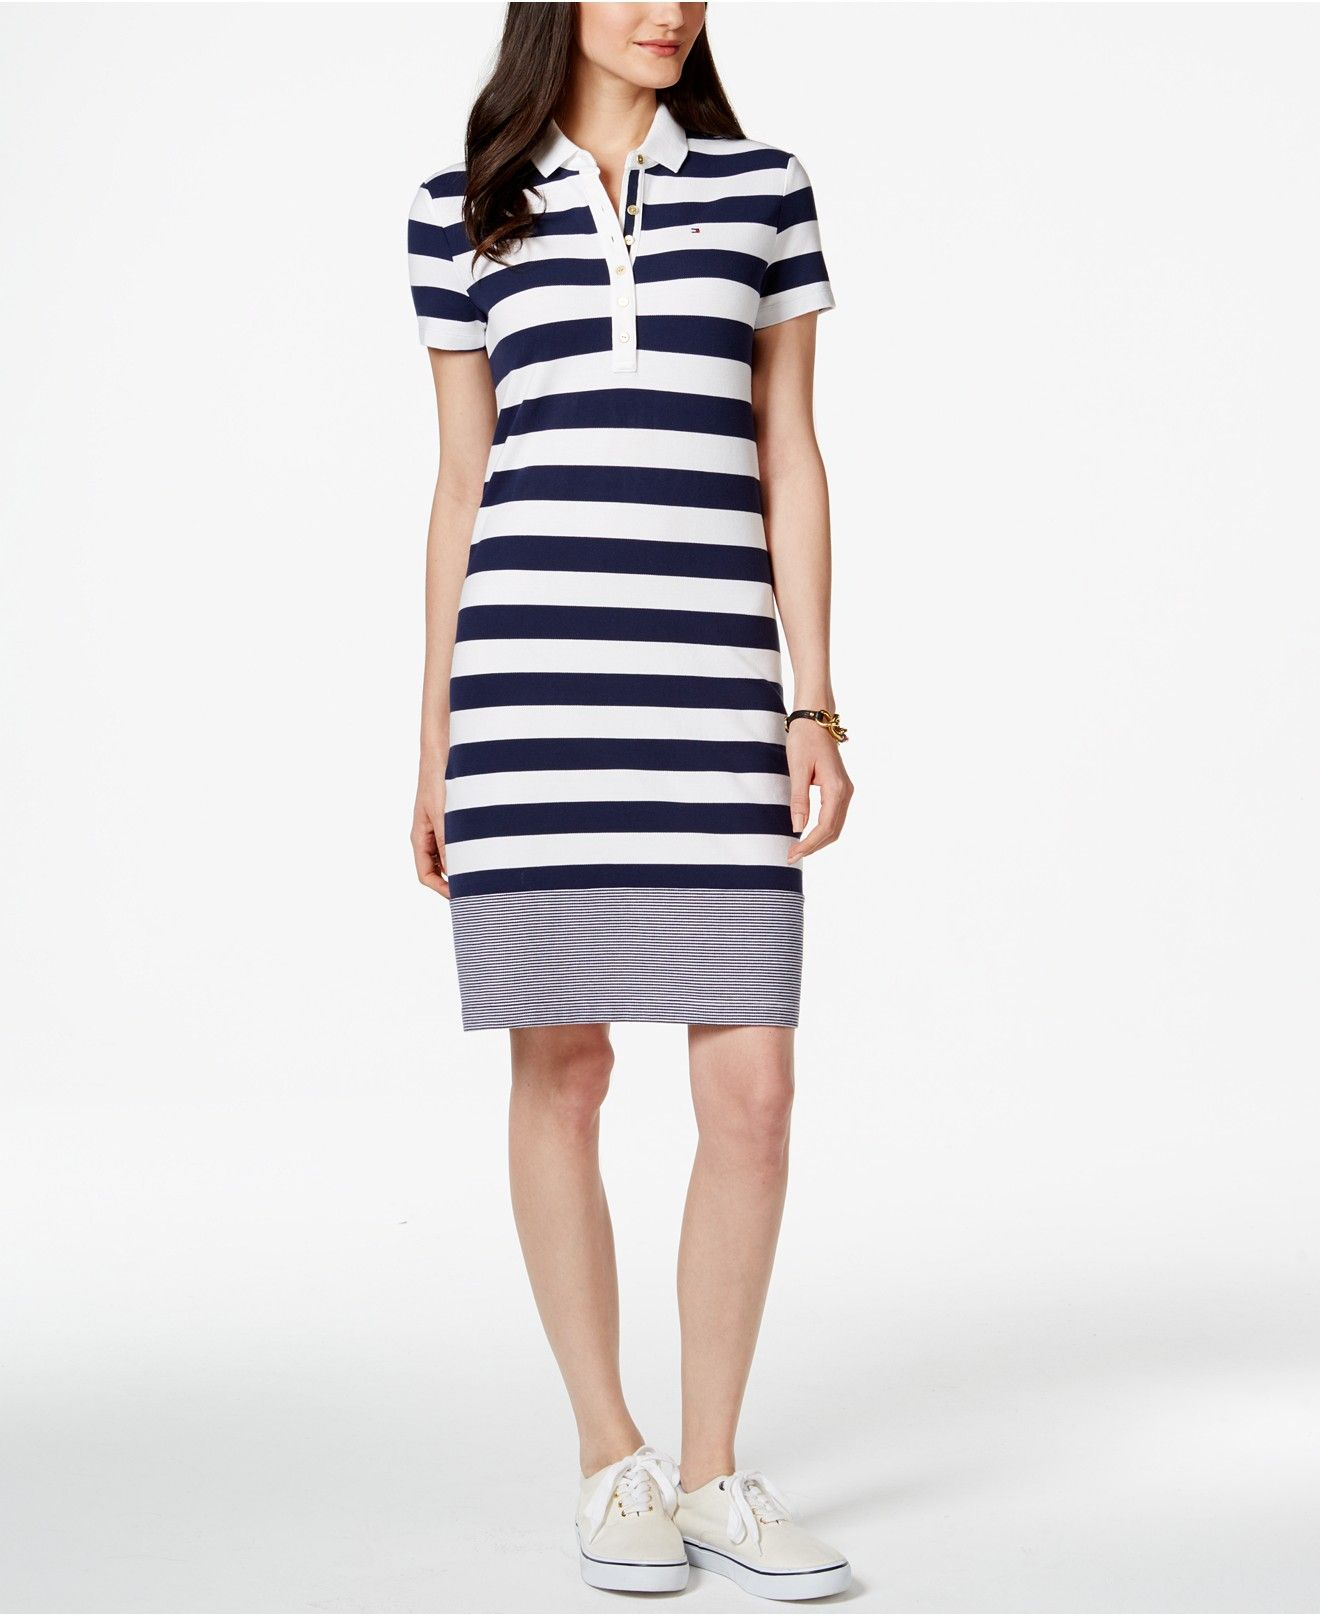 9c592d41 Tommy Hilfiger Miranda Short-Sleeve Striped Polo Dress - Dresses - Women -  Macy's